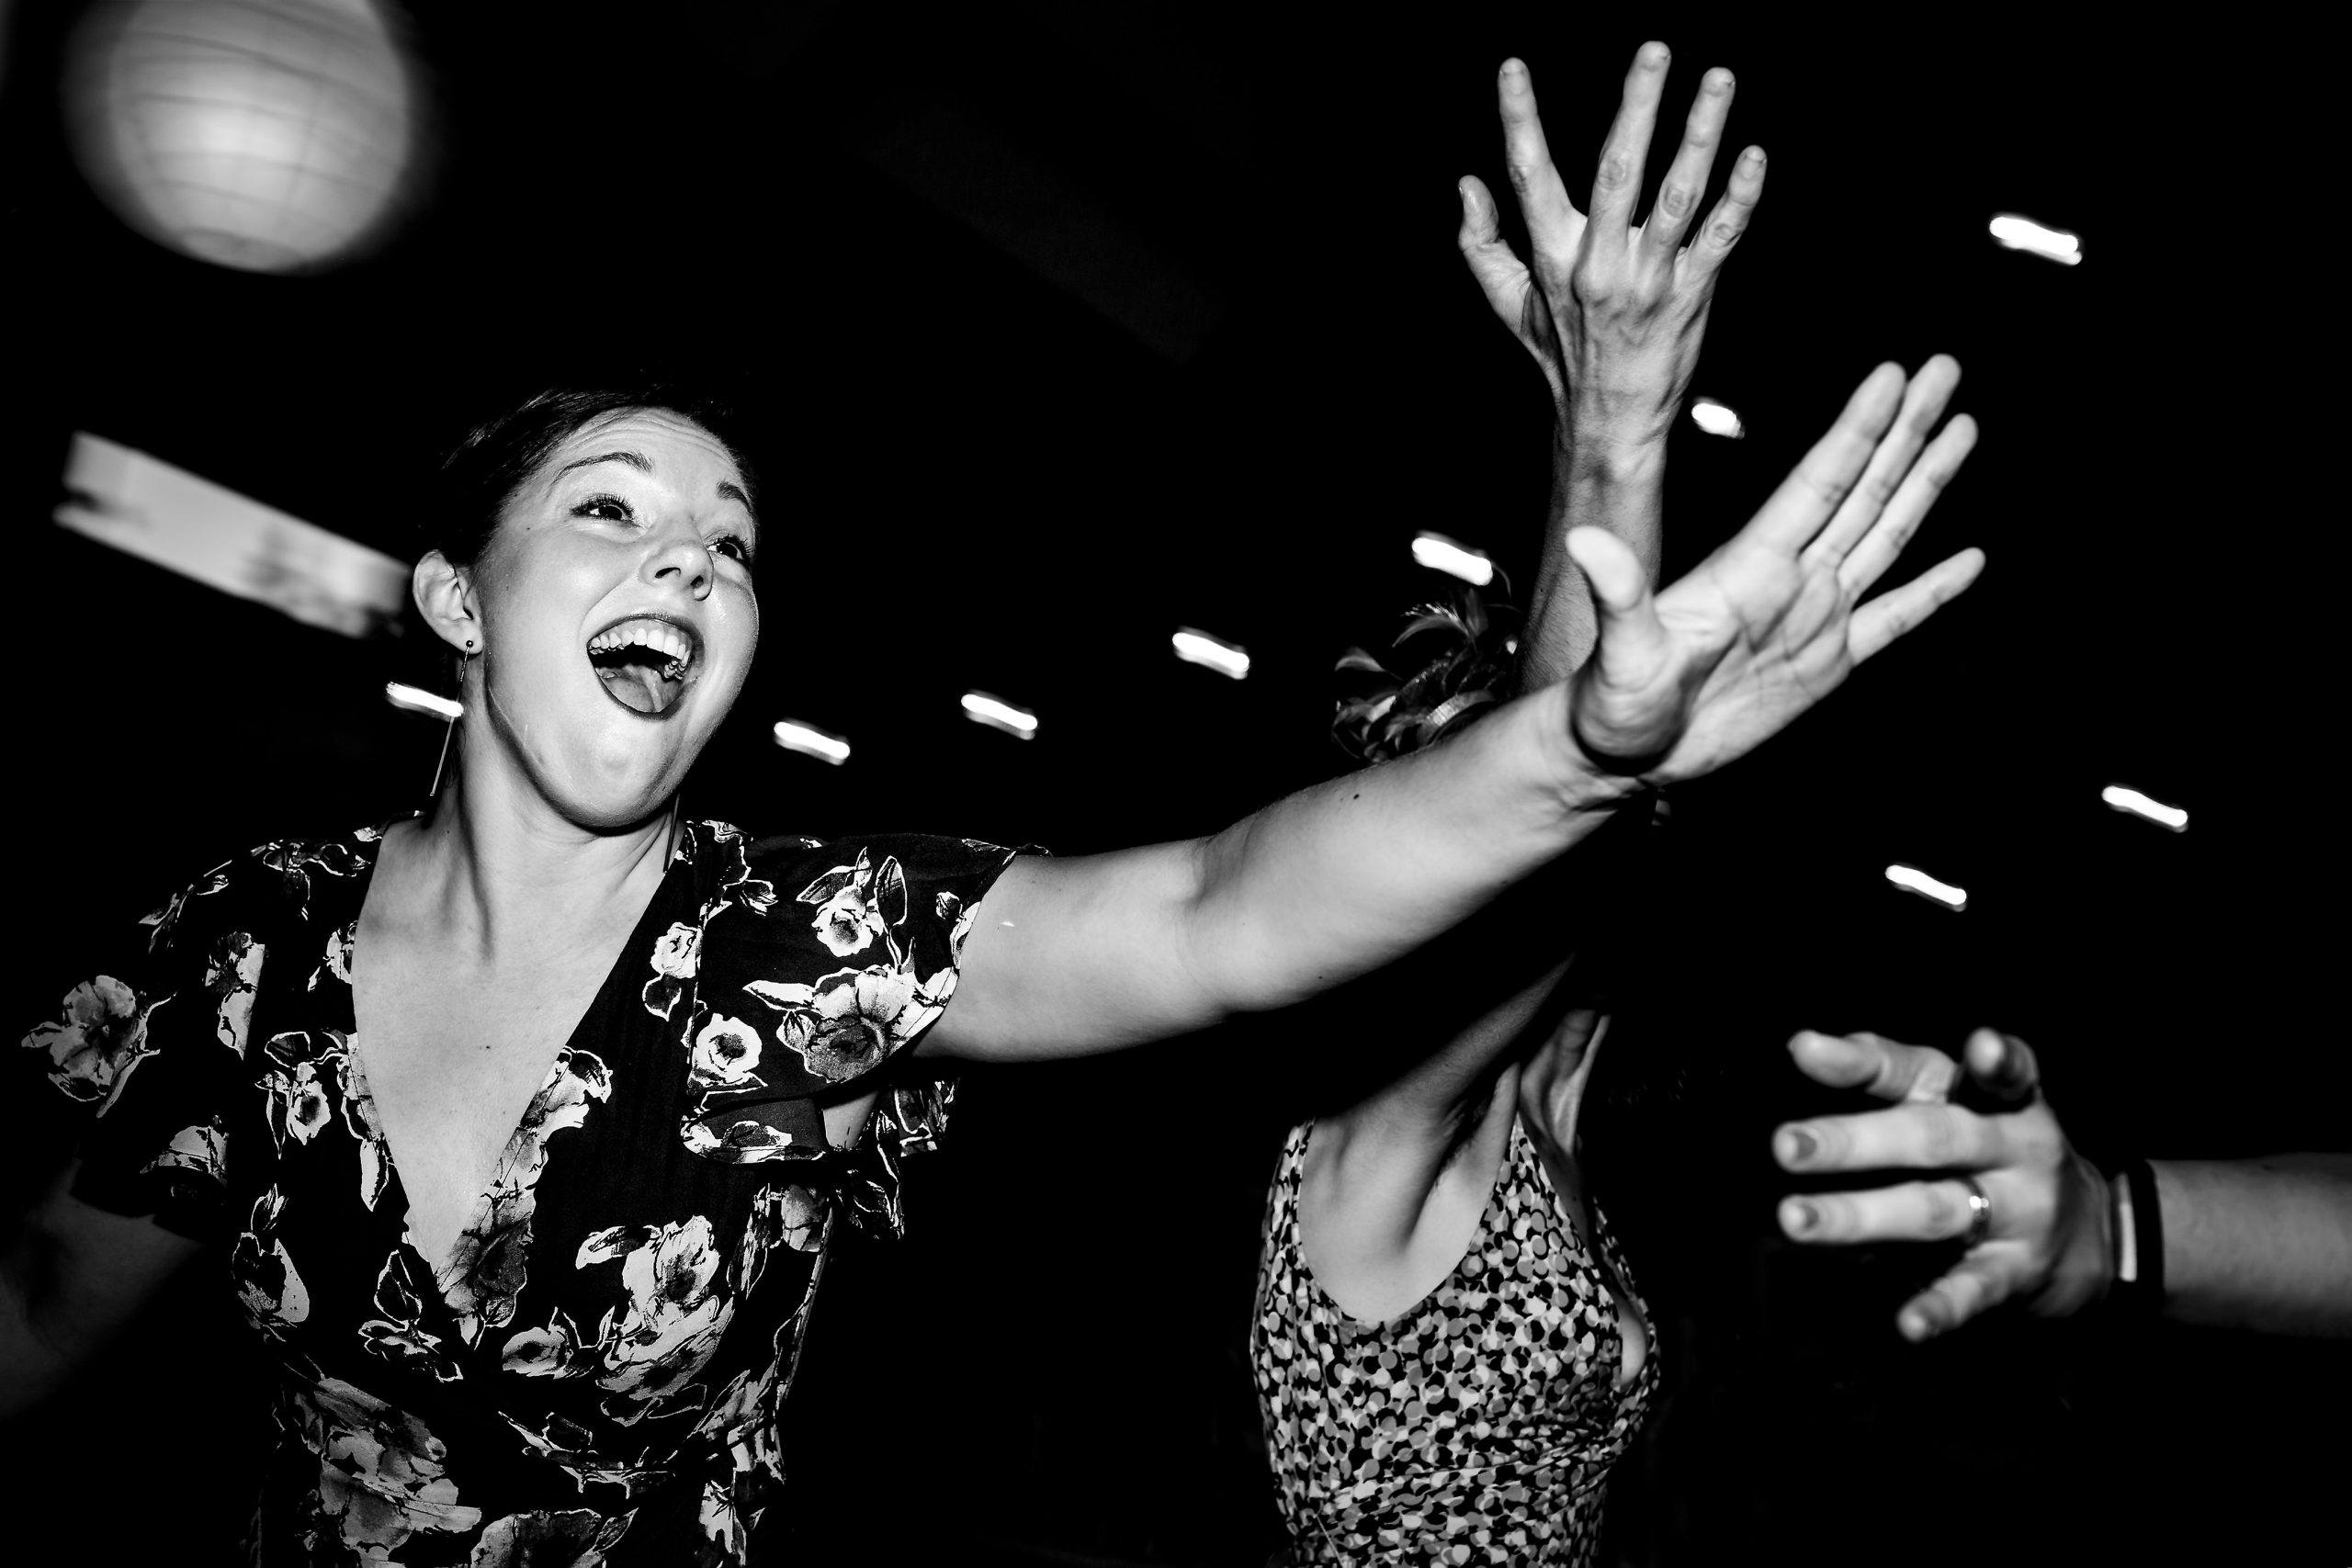 A woman dances with other people